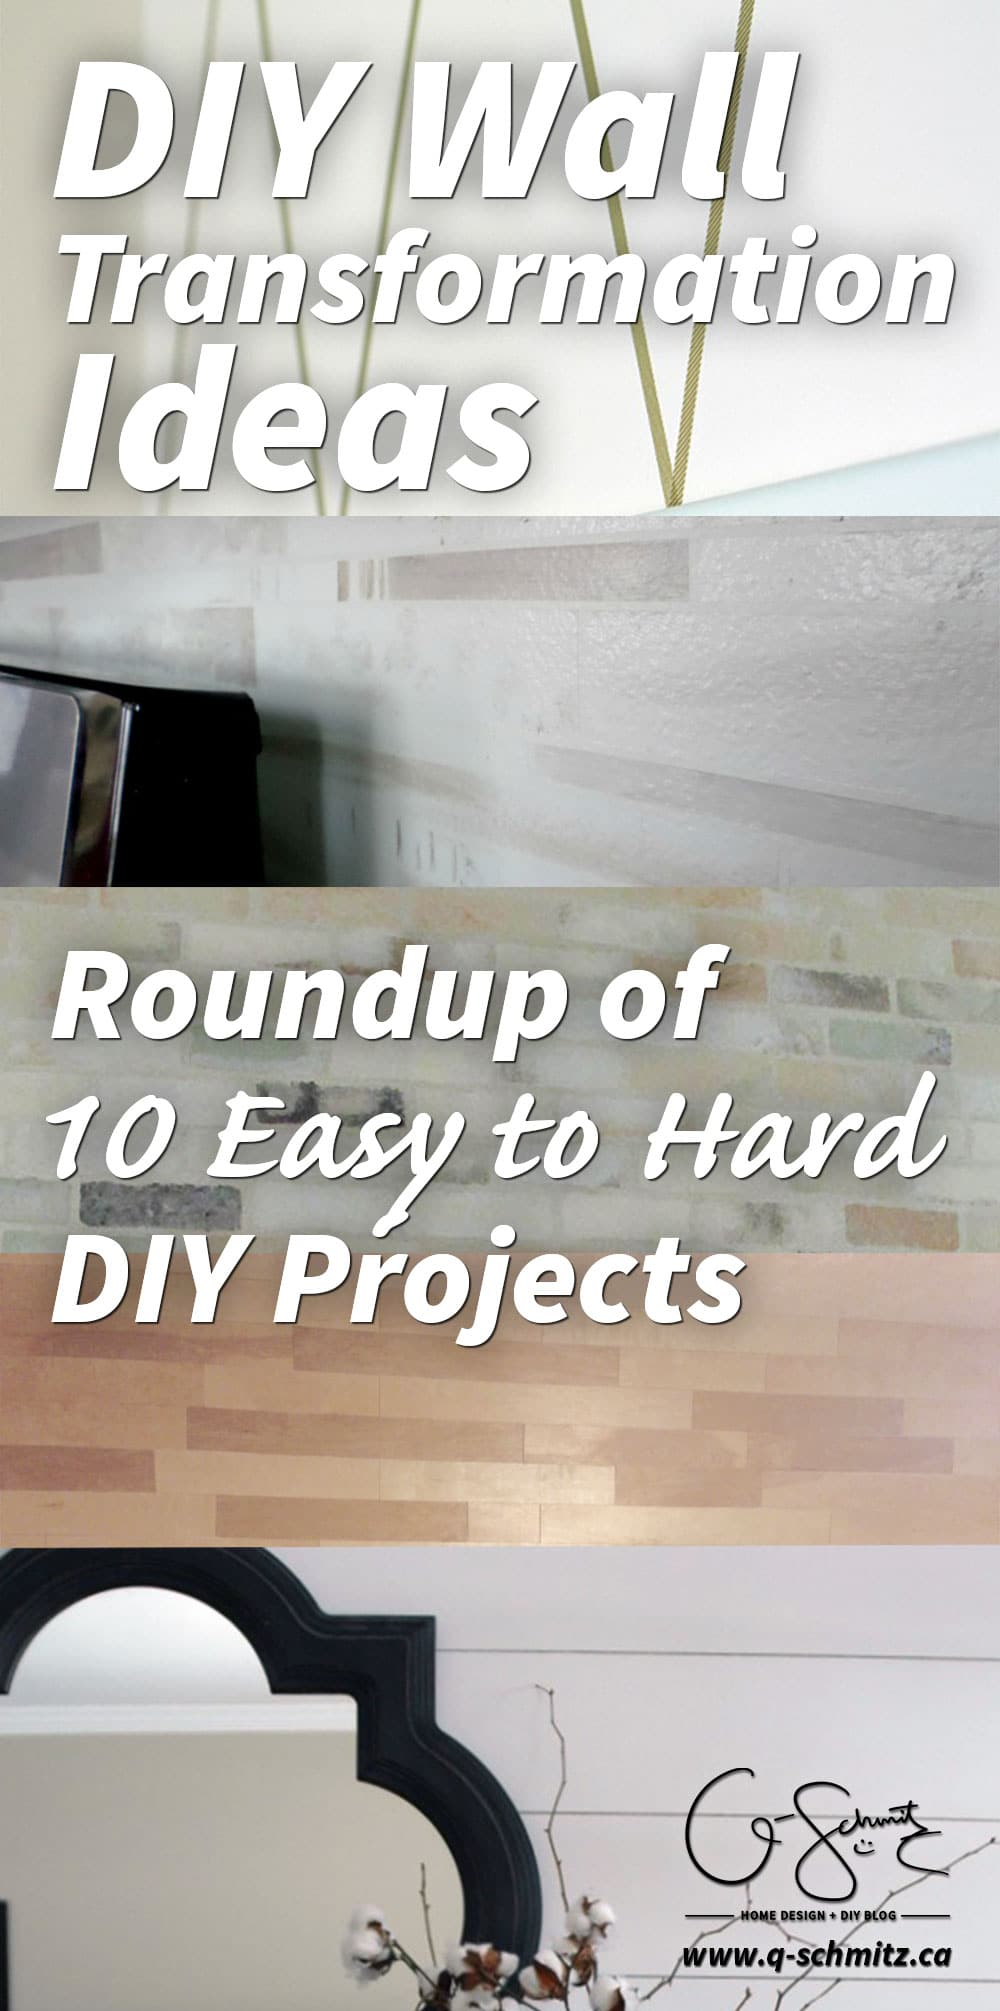 Today I'm rounding up some DIY wall transformation ideas, starting from  easier,